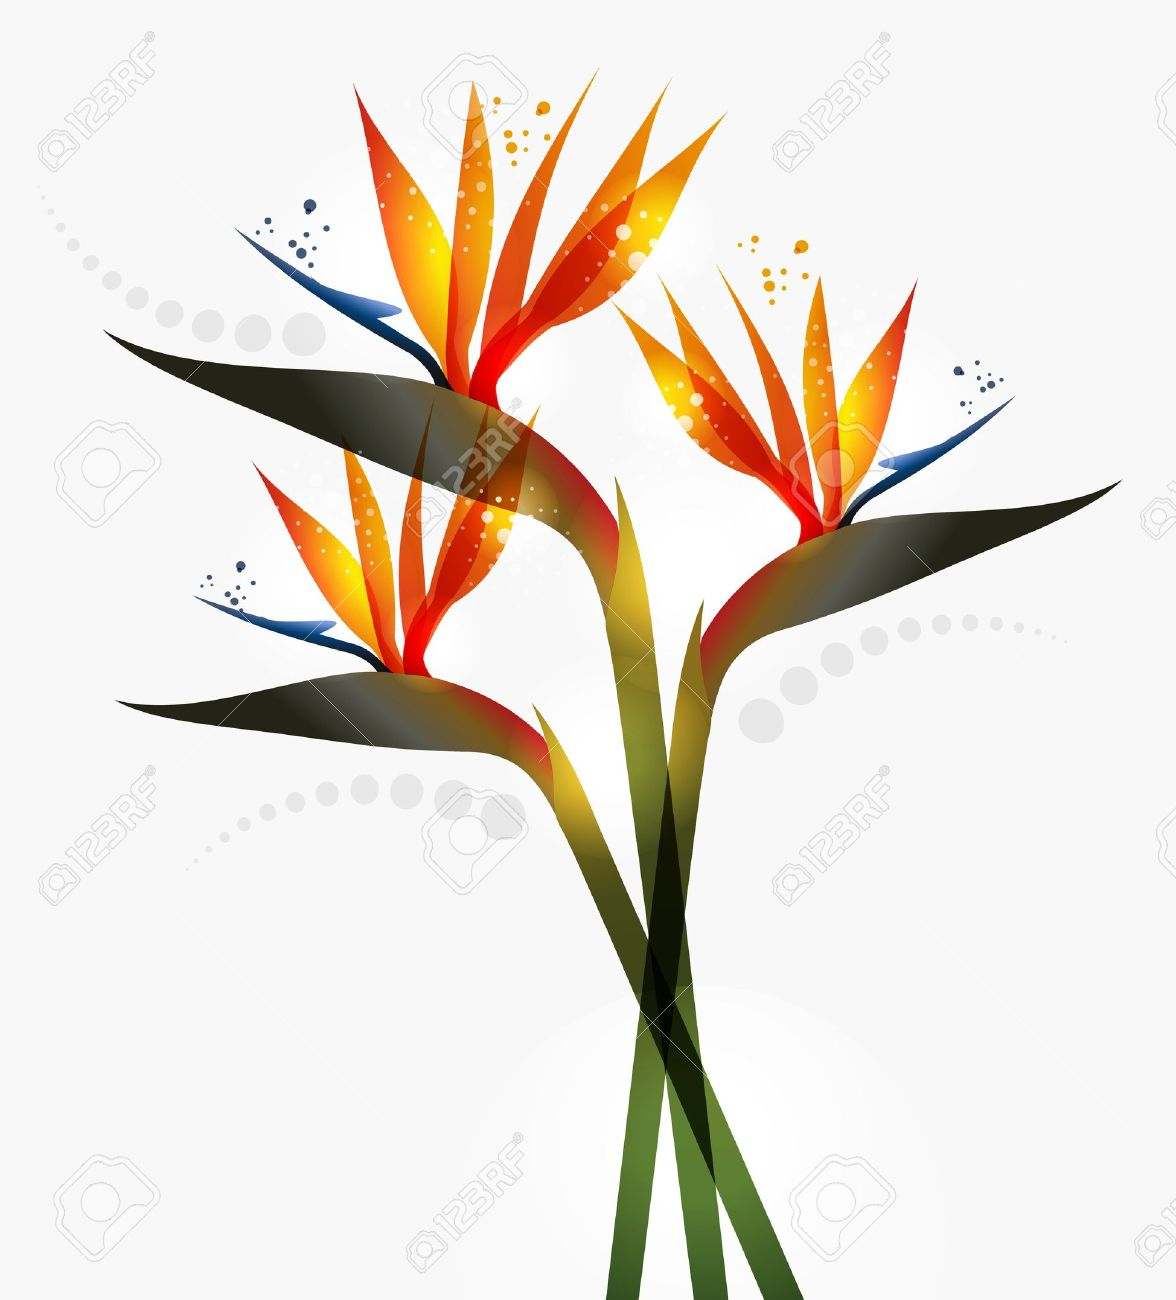 Bird of paradise clipart jpg freeuse library Bird of paradise clipart 7 » Clipart Station jpg freeuse library